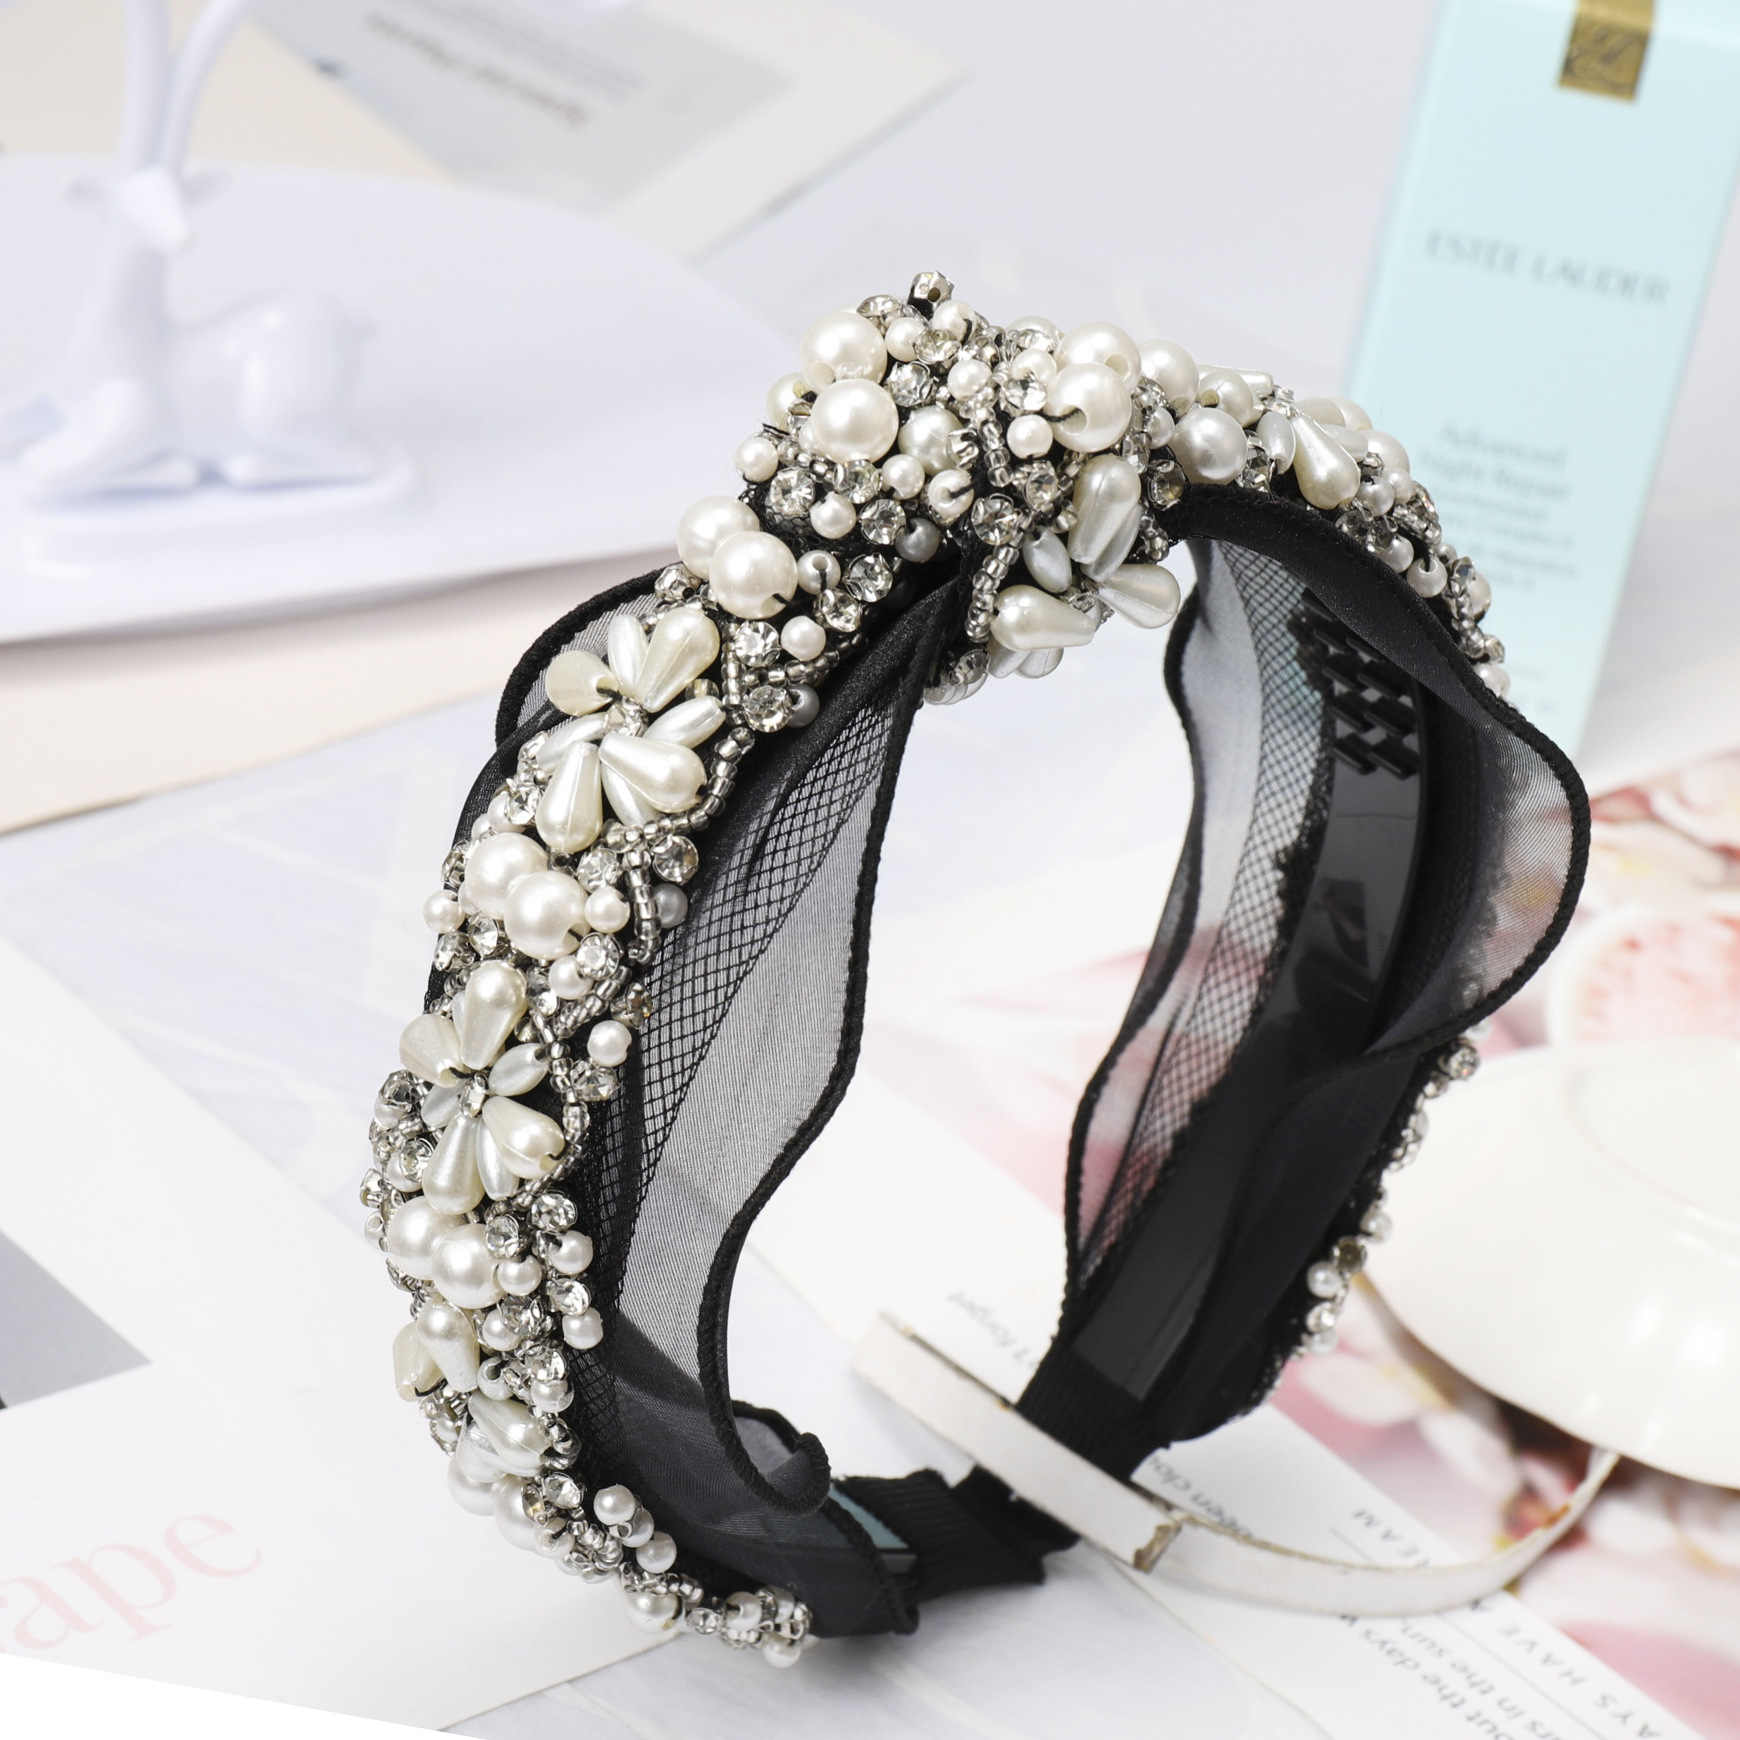 f83b2447e3 Lace Headband Diamond Pearl Rhinestone Hair Accessories Black Butterfly  Boutique Bow Hair Bands for Women Knot Haar Accessoires